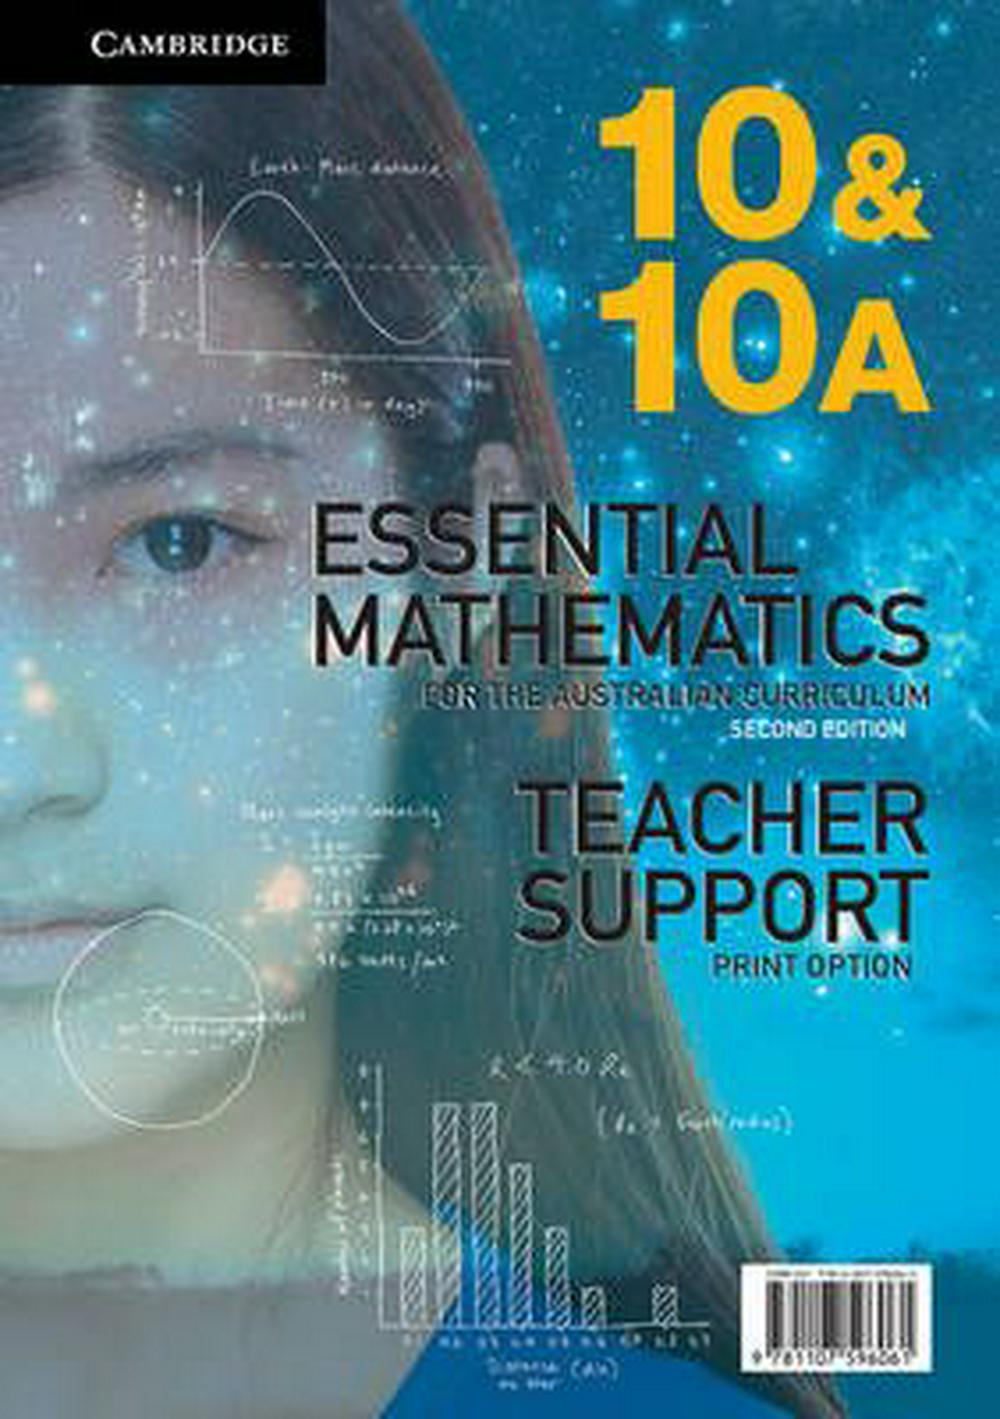 Essential Mathematics for the Australian Curriculum Year 10 Teacher Support Print Option